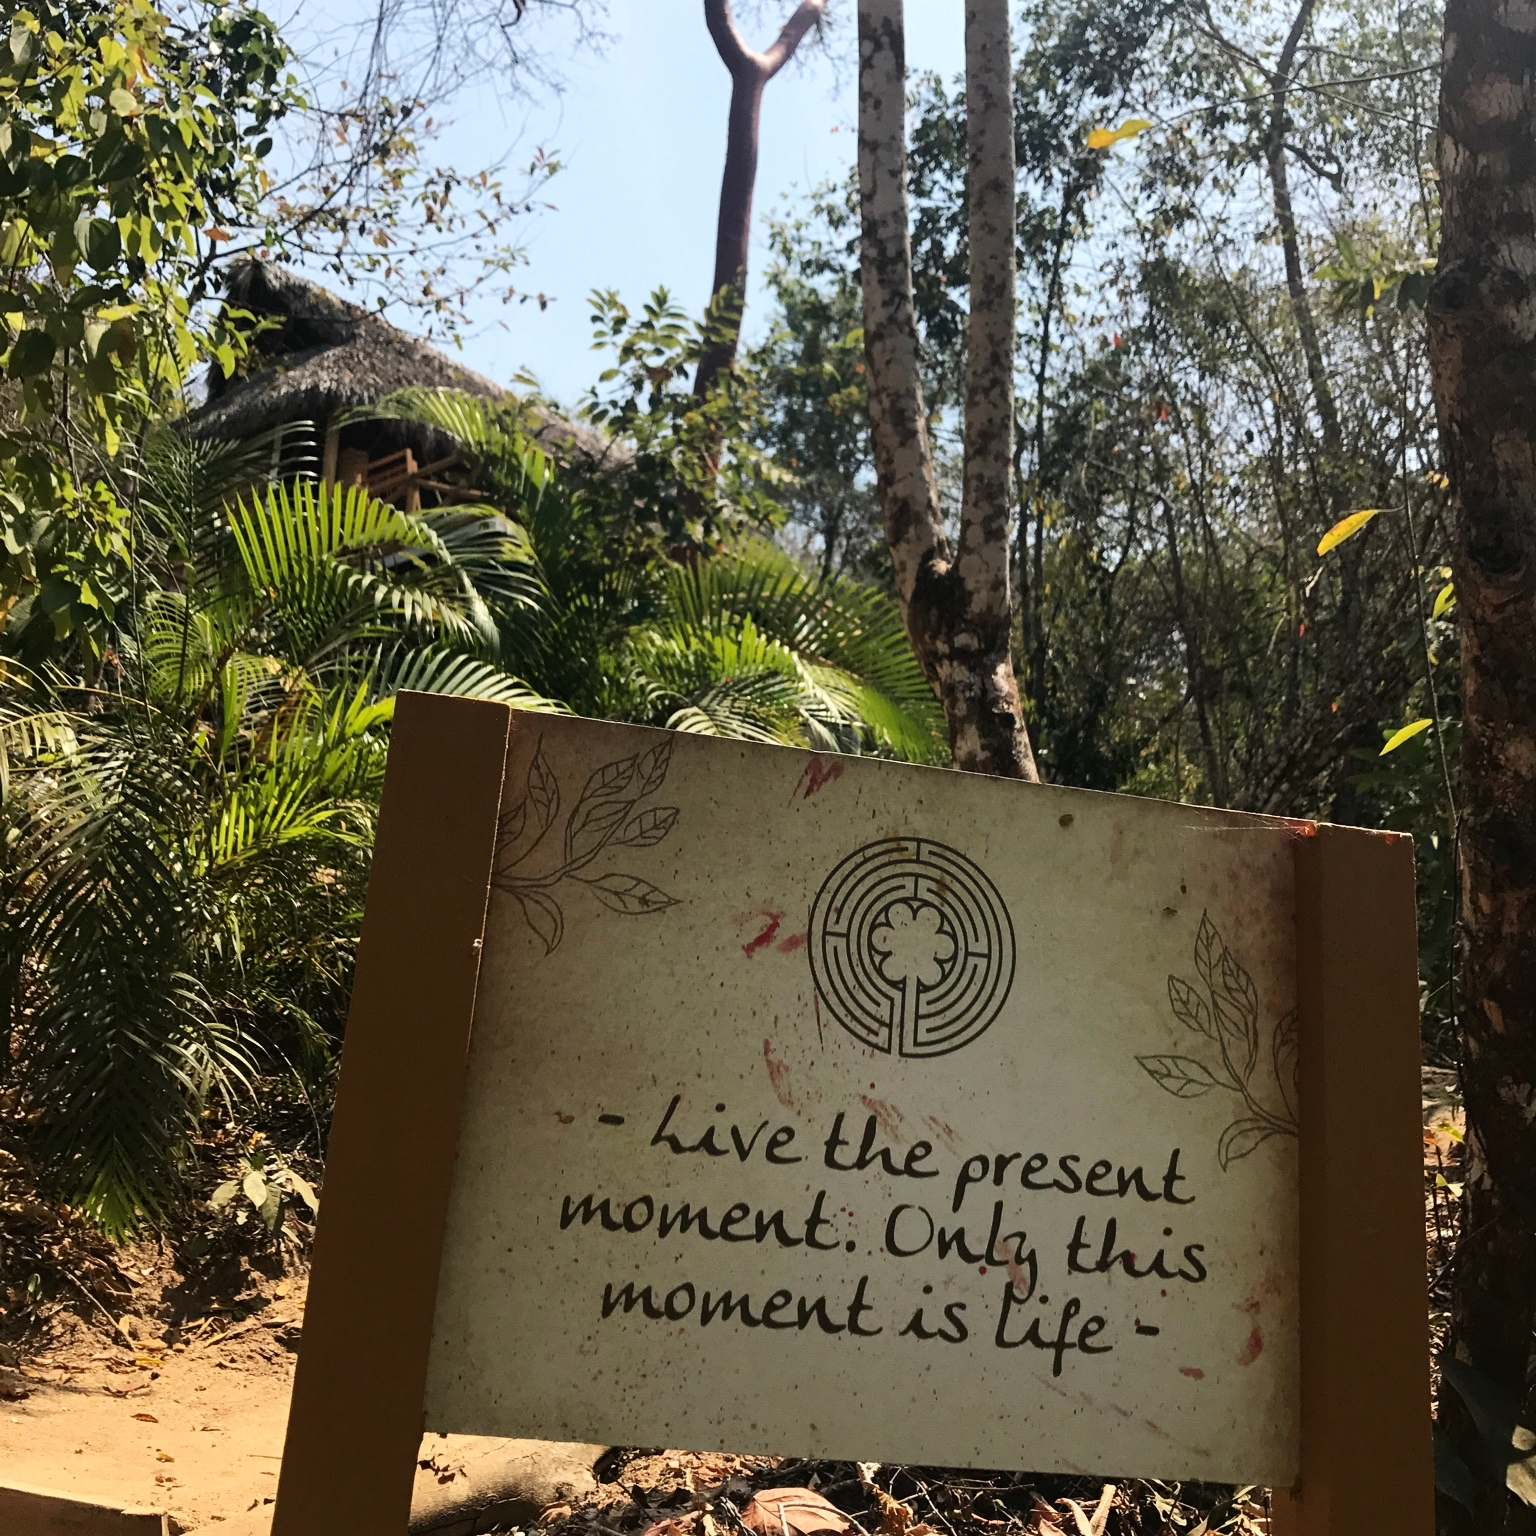 Signs around the grounds helped us stay positive when walking up the hills to our accommodations. The Small Palapa is pictured in the distance.